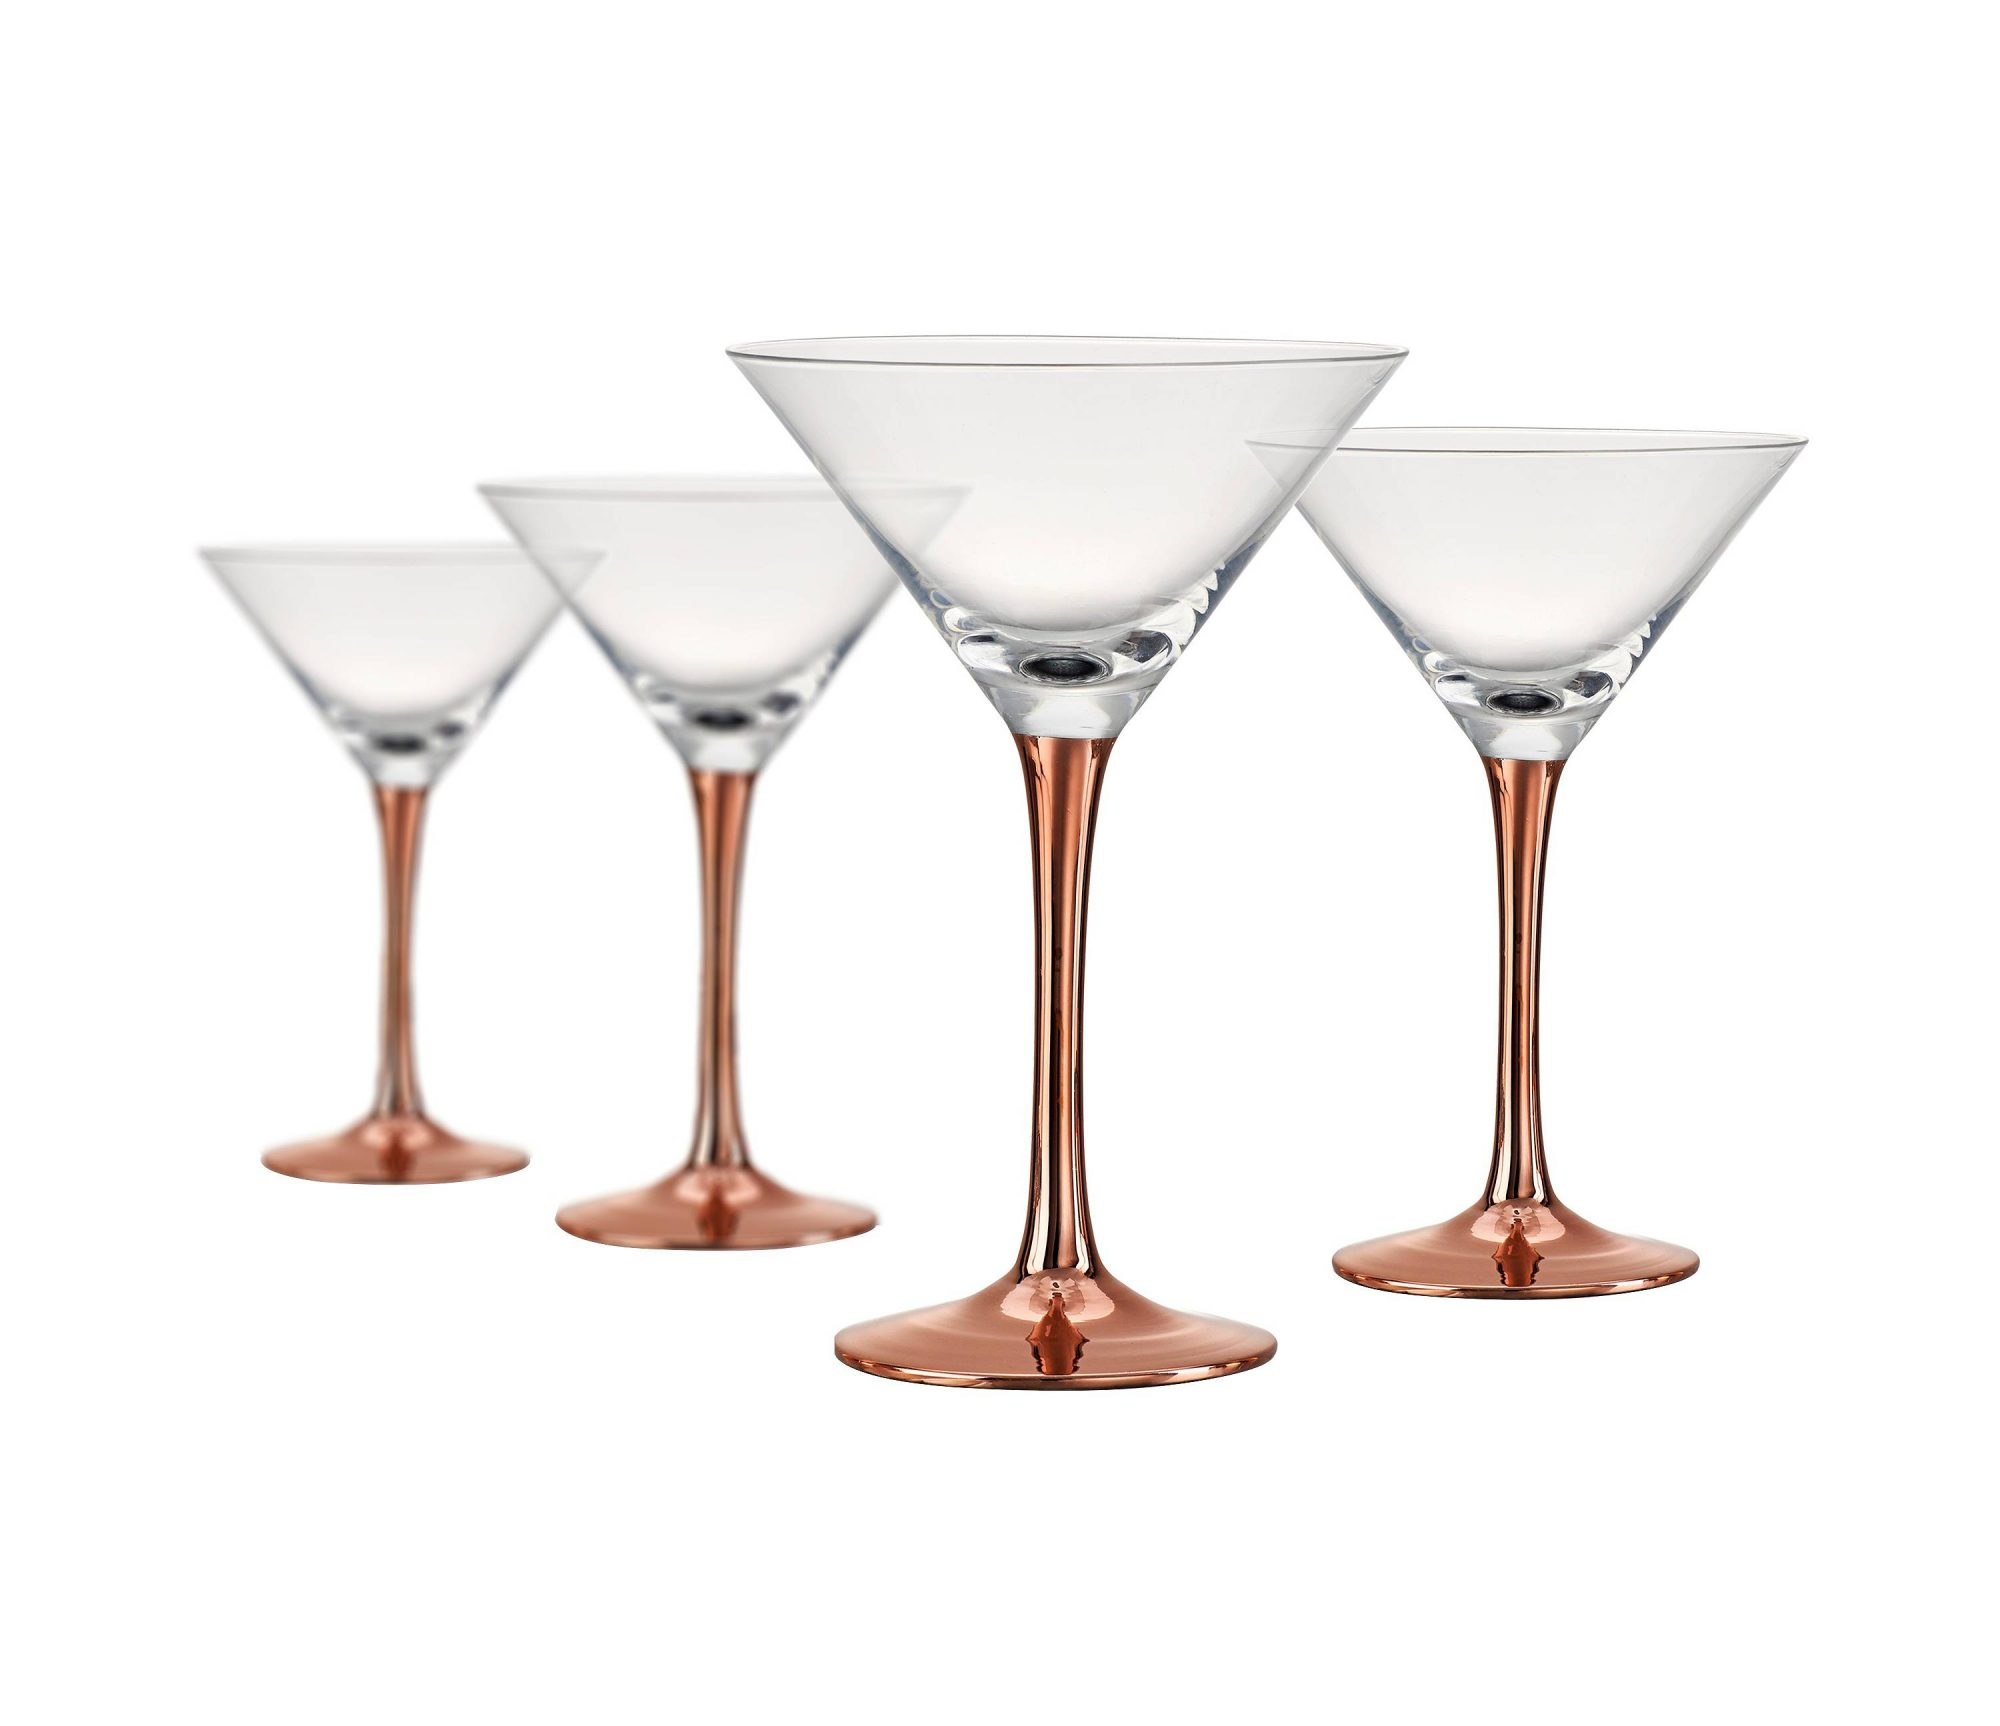 Coppertino-Martin-Glass-set-target.jpeg